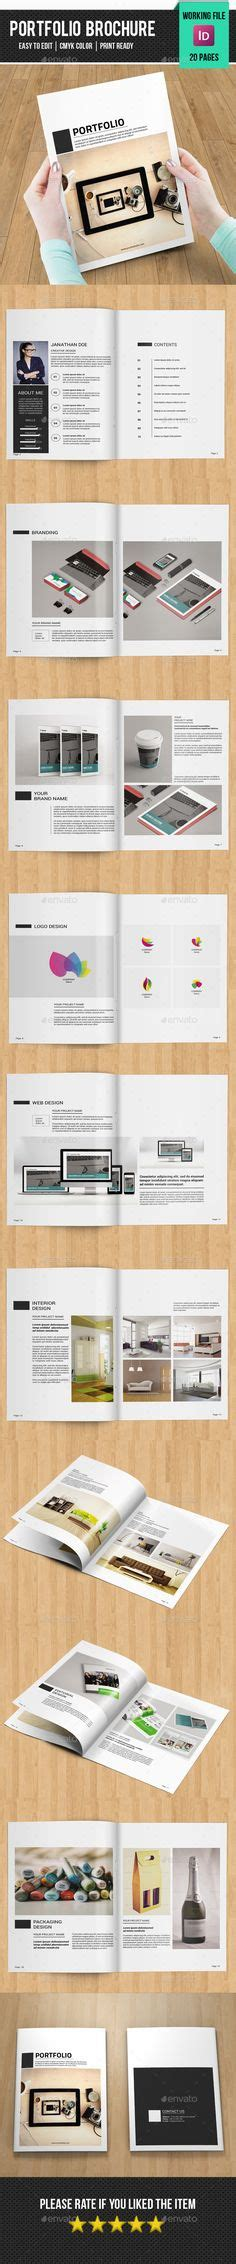 42 excellent exles of magazine layout design for your